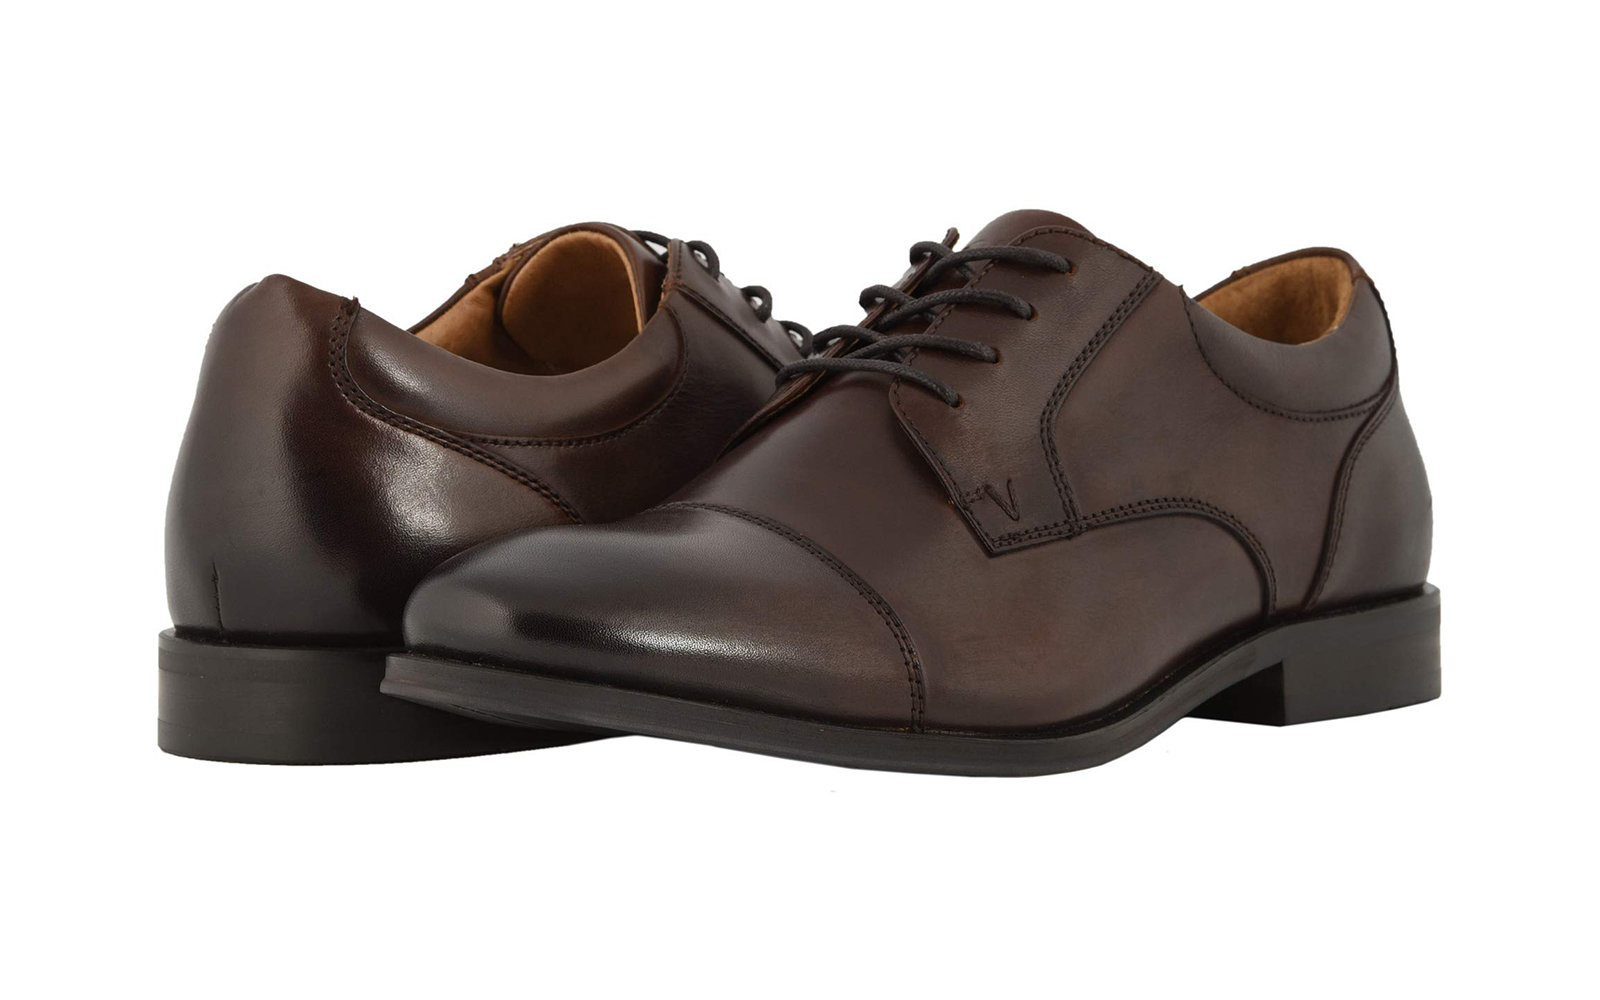 dc91628802c0 The 12 Most Comfortable Dress Shoes for Men